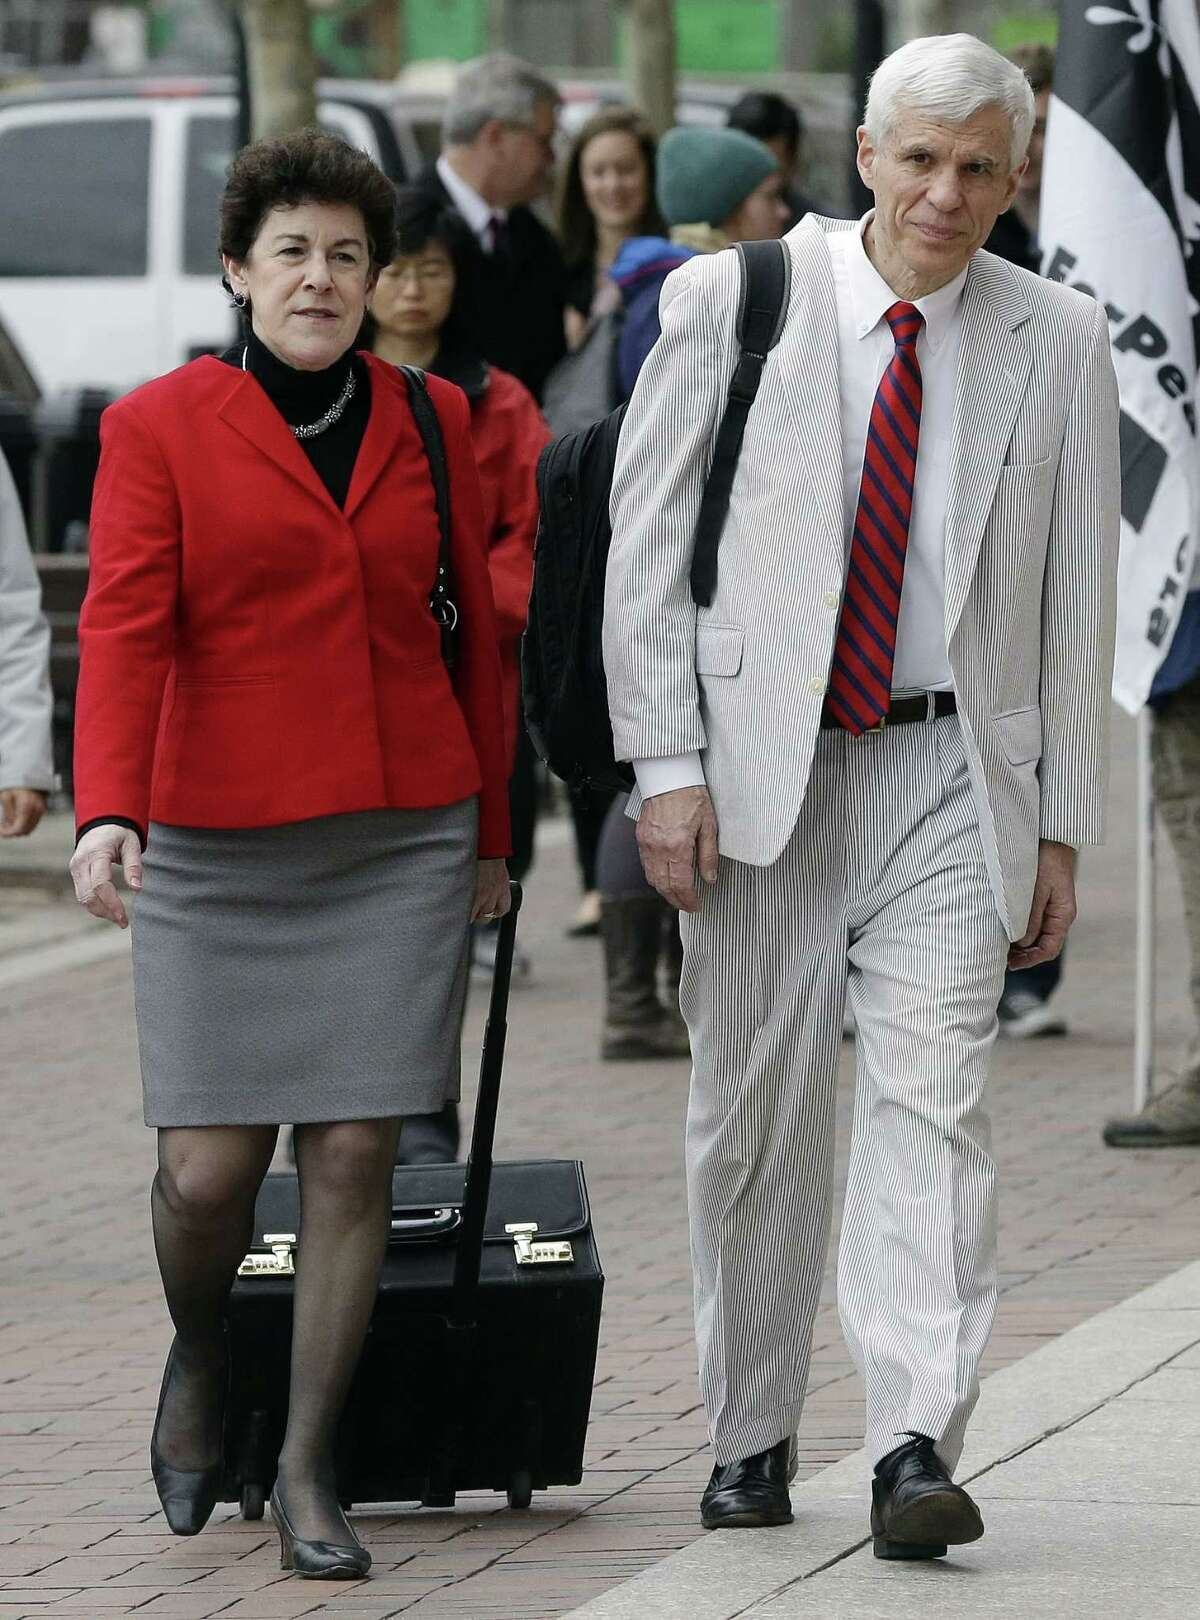 Defense attorneys Miriam Conrad, left, and David Bruck arrive at federal court in Boston Thursday, April 30, 2015, during the penalty phase in the trial of Dzhokhar Tsarnaev. Tsarnaev was convicted of the Boston Marathon bombings that killed three and injured 260 people in April 2013. (AP Photo/Steven Senne)